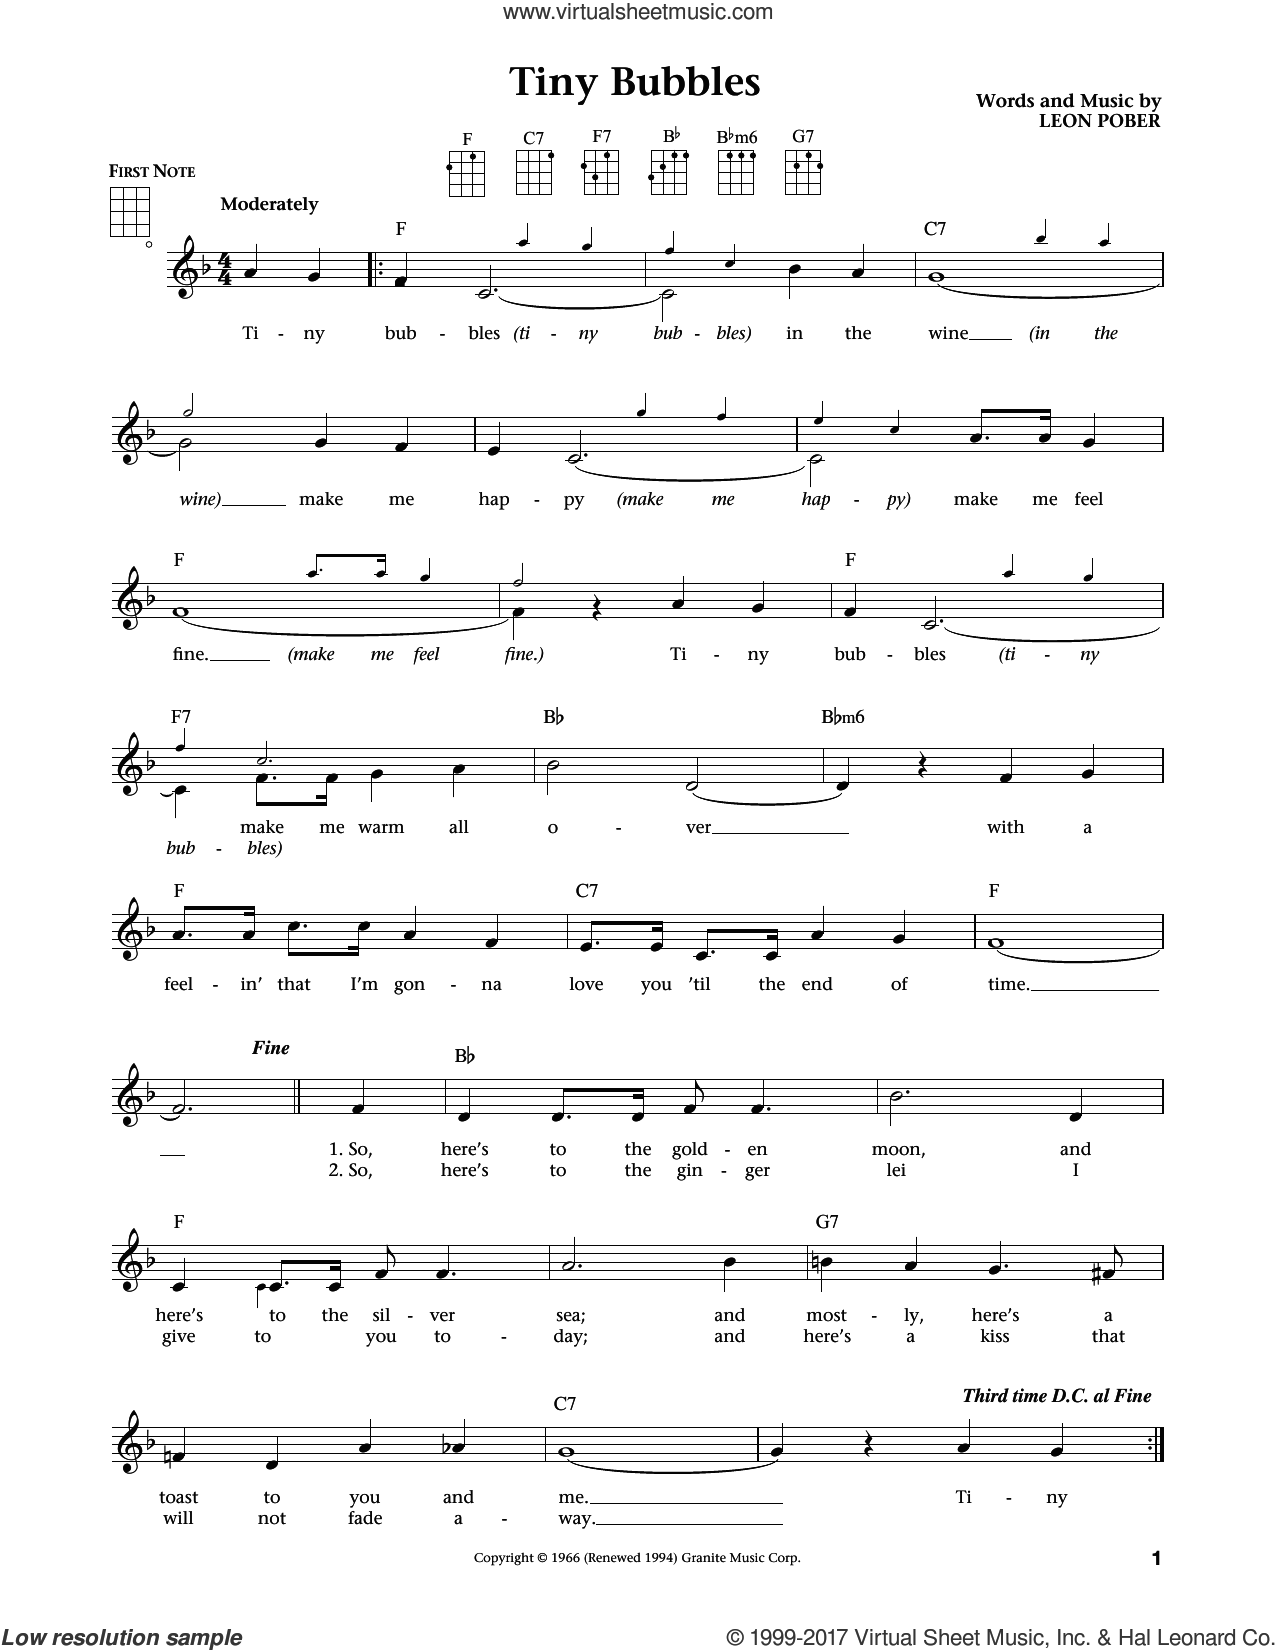 Tiny Bubbles sheet music for ukulele by Leon Pober, intermediate. Score Image Preview.